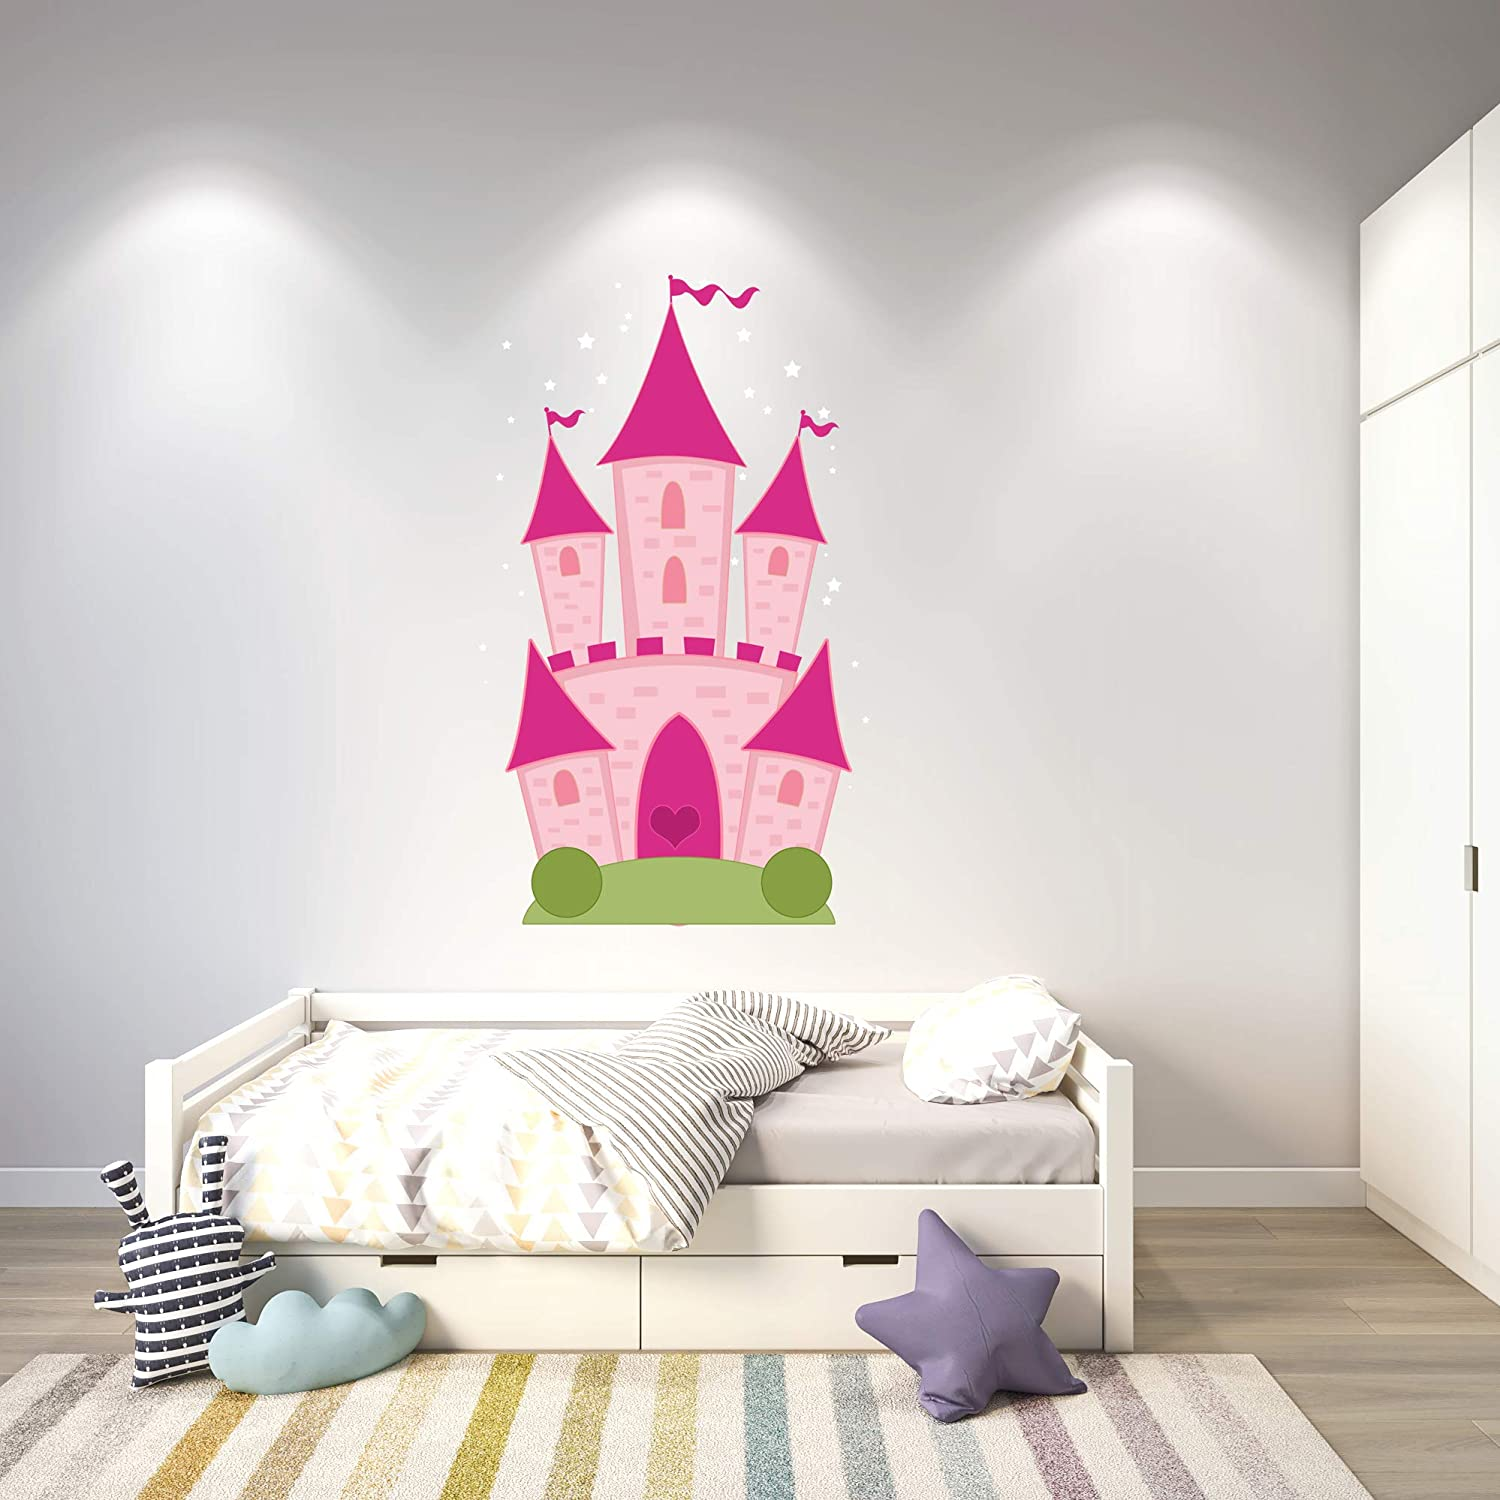 Cartoon Castle Color Wall Sticker for Boys Gerls Room - Nurserie D?cor Design 3